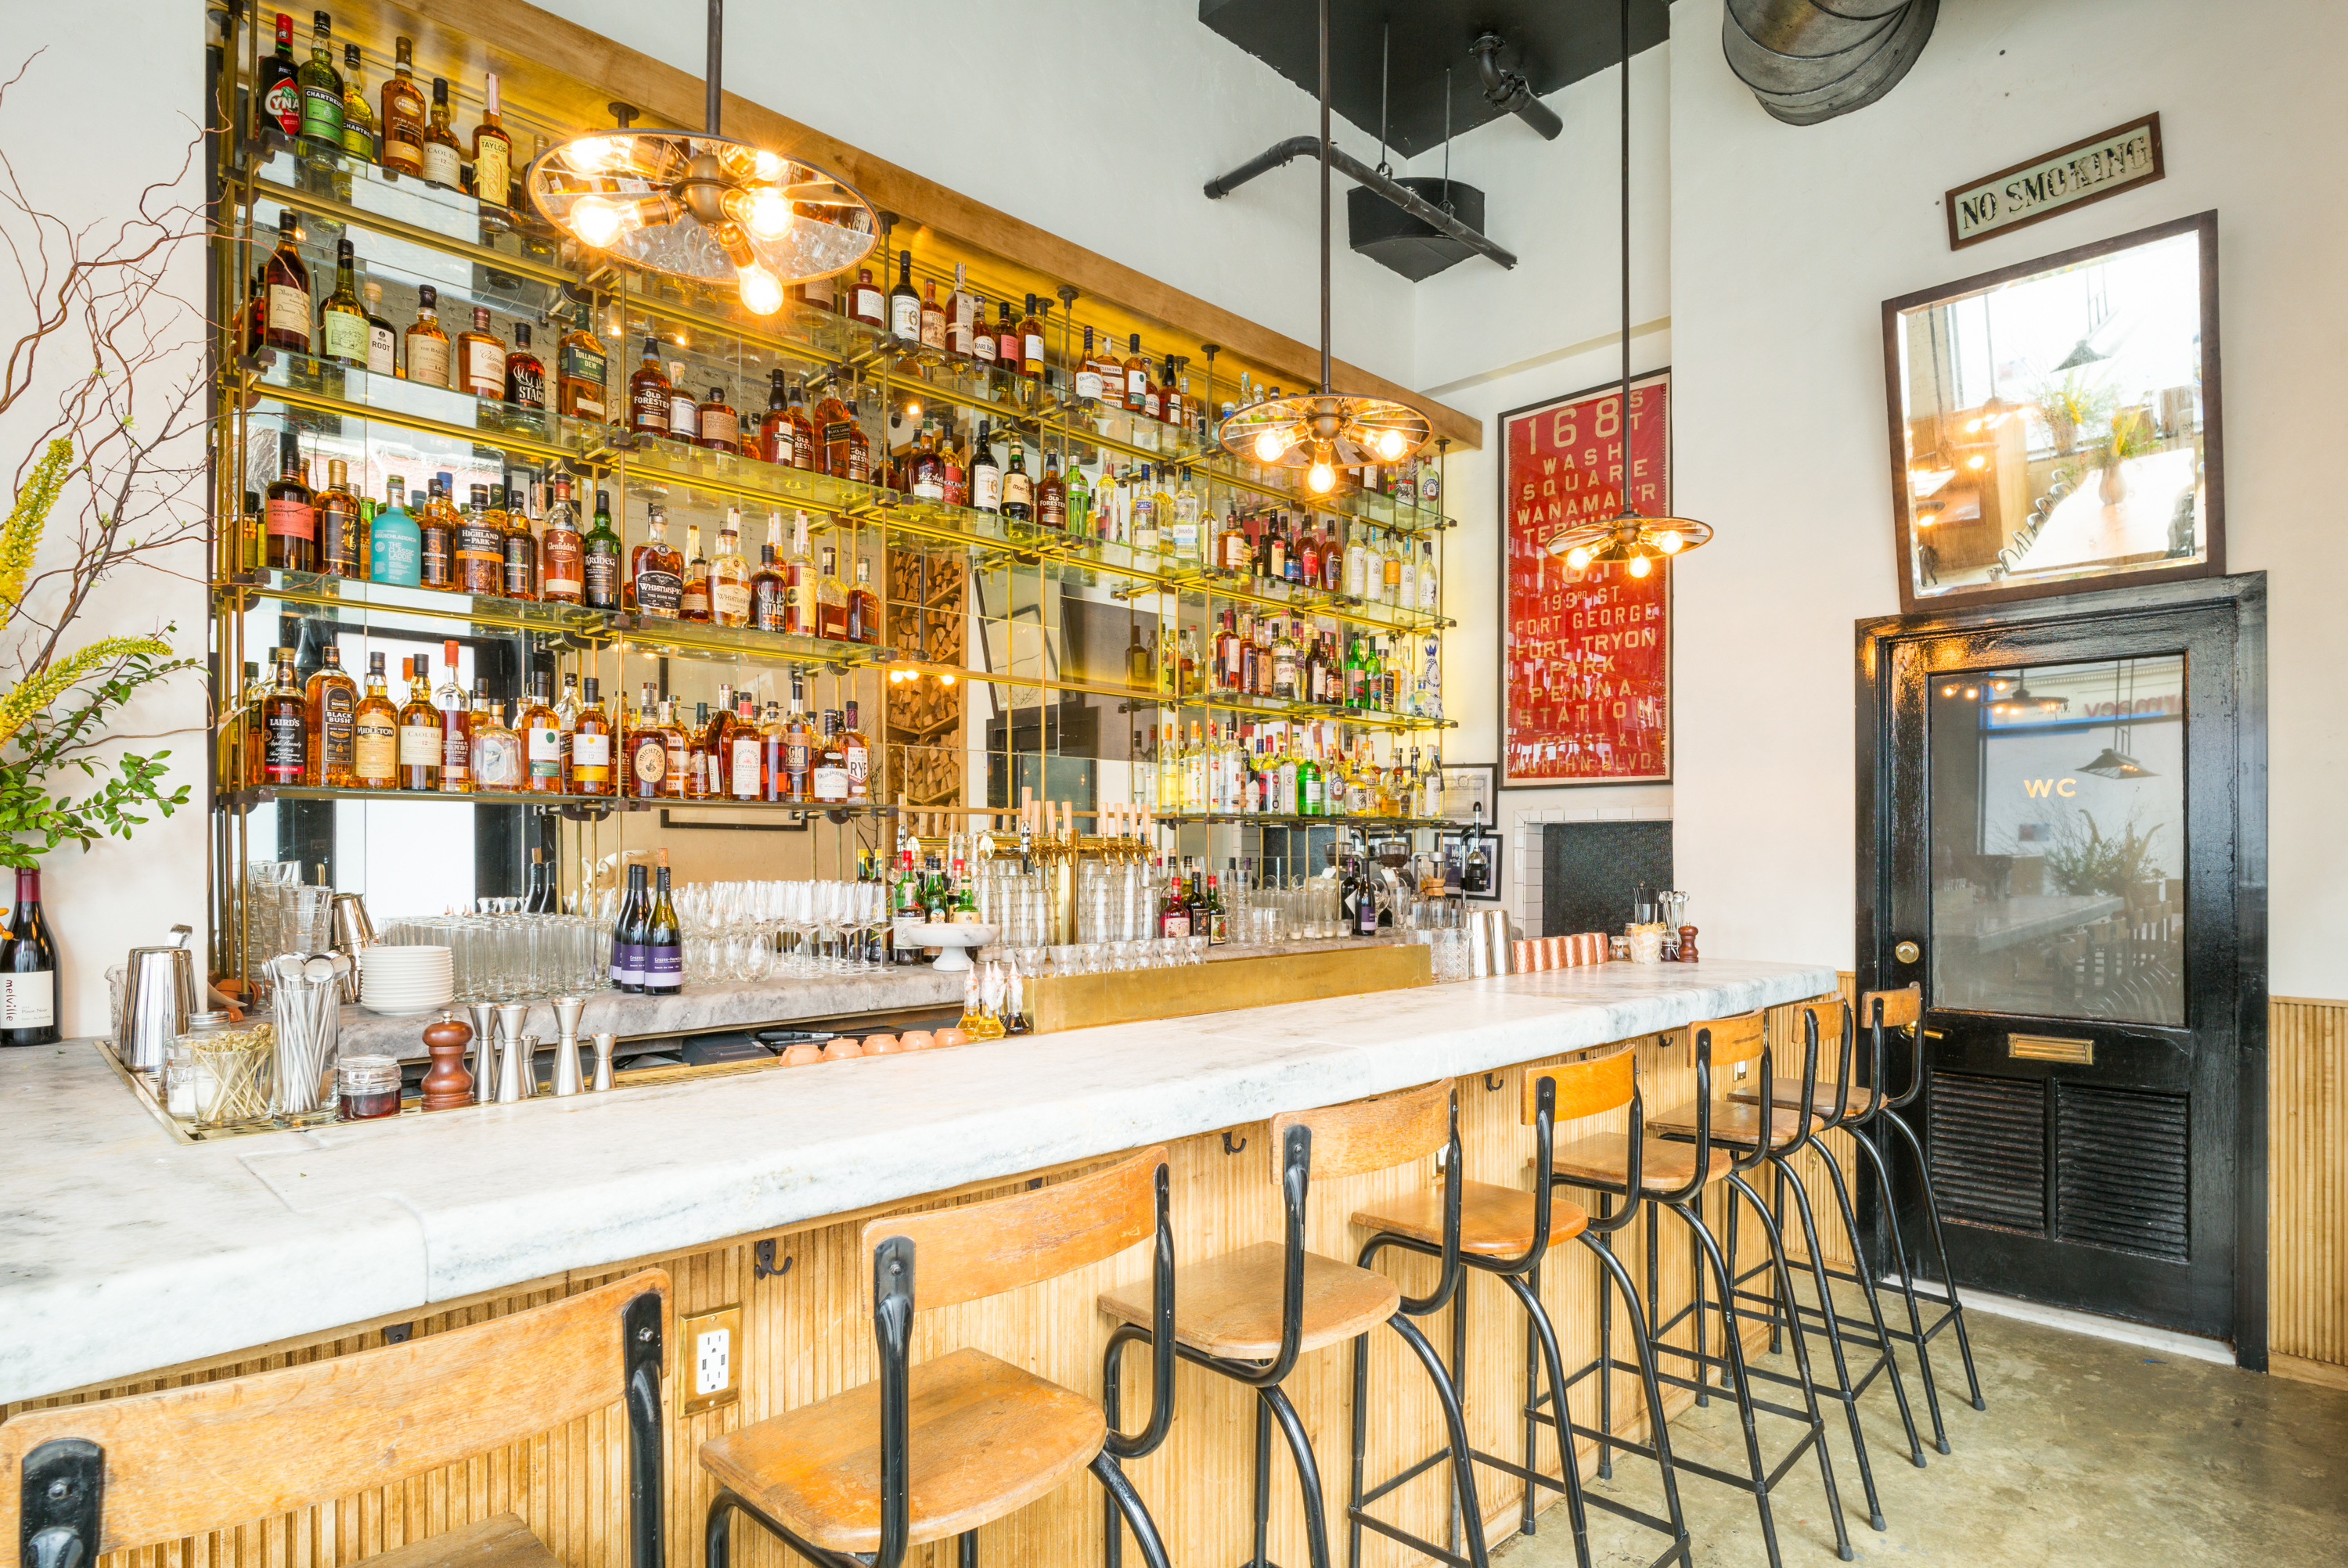 Barbecue Favorite Pig Beach's Upscale Greenwich Village Sibling Is Closing